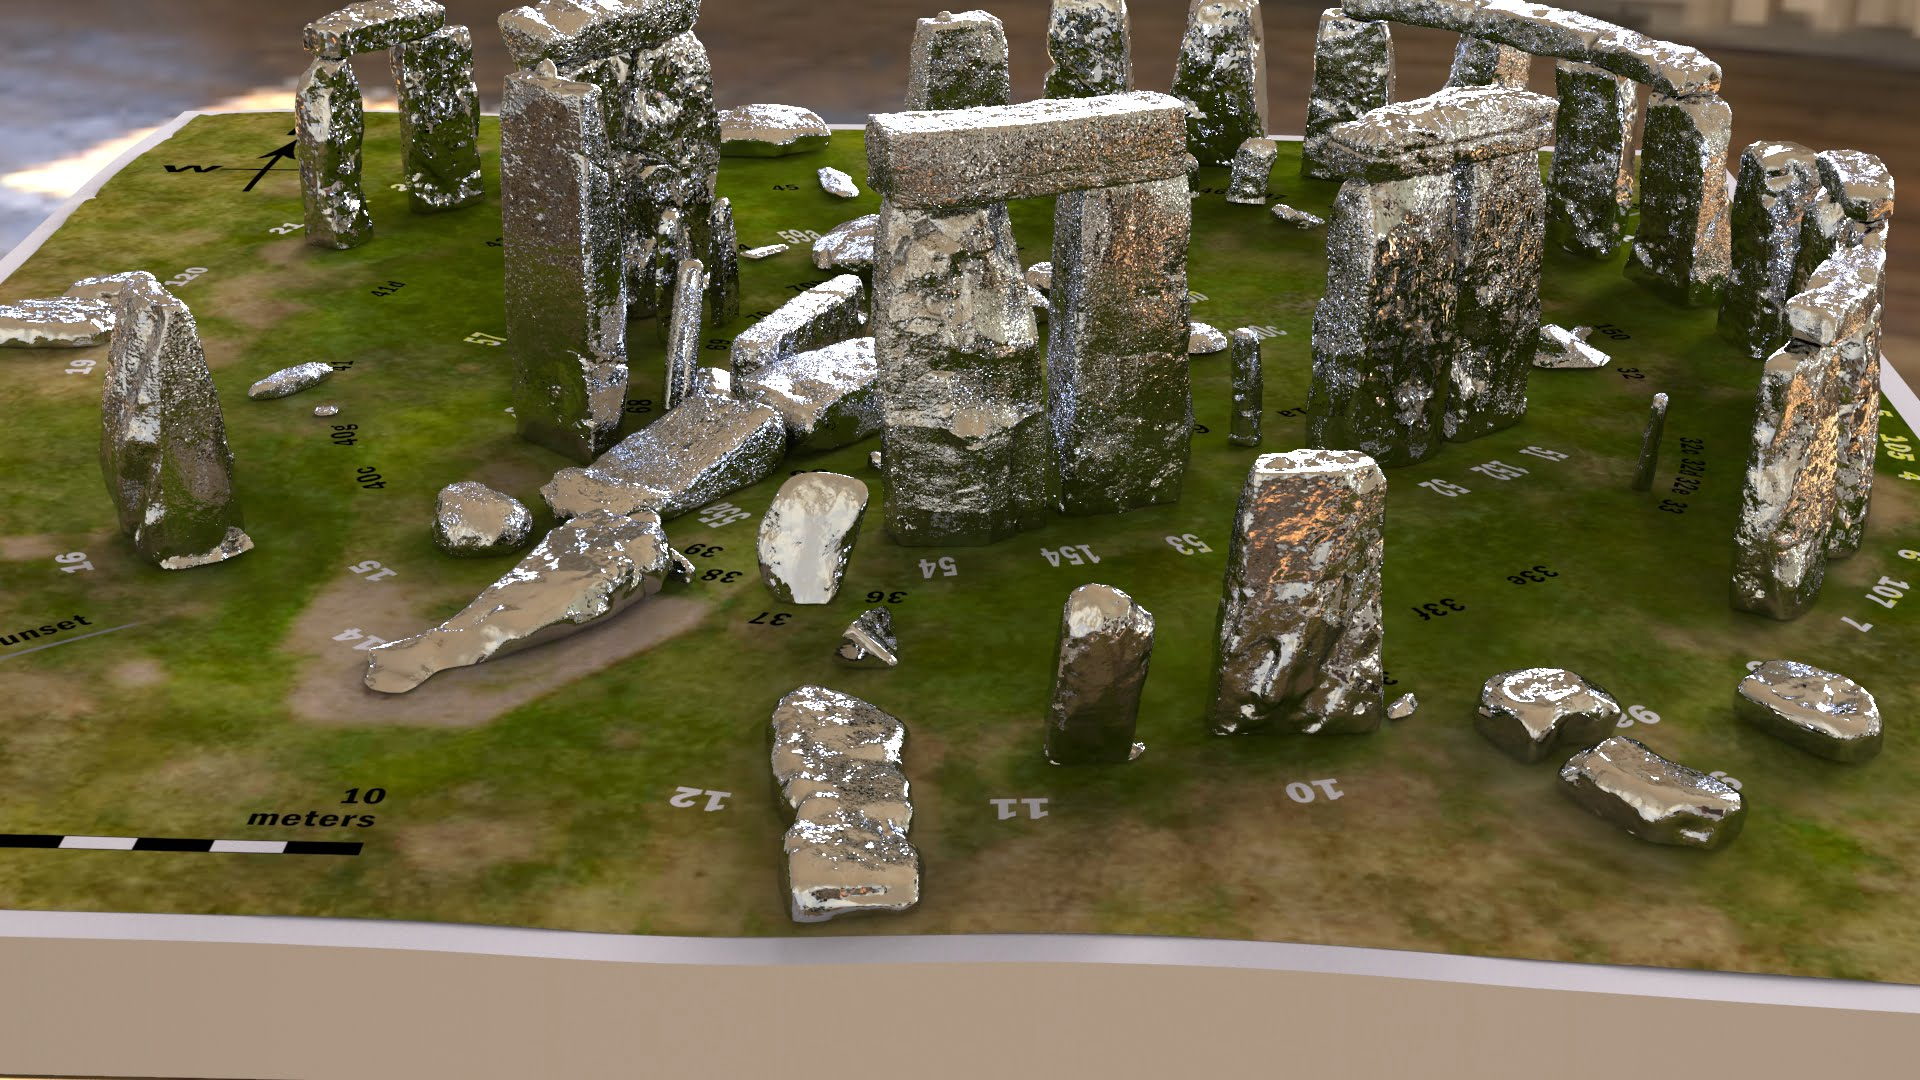 Buy Stonehenge Models: Silver Stonehenge replica models at 200th scale 003 2  - 200th scale pick n mix -